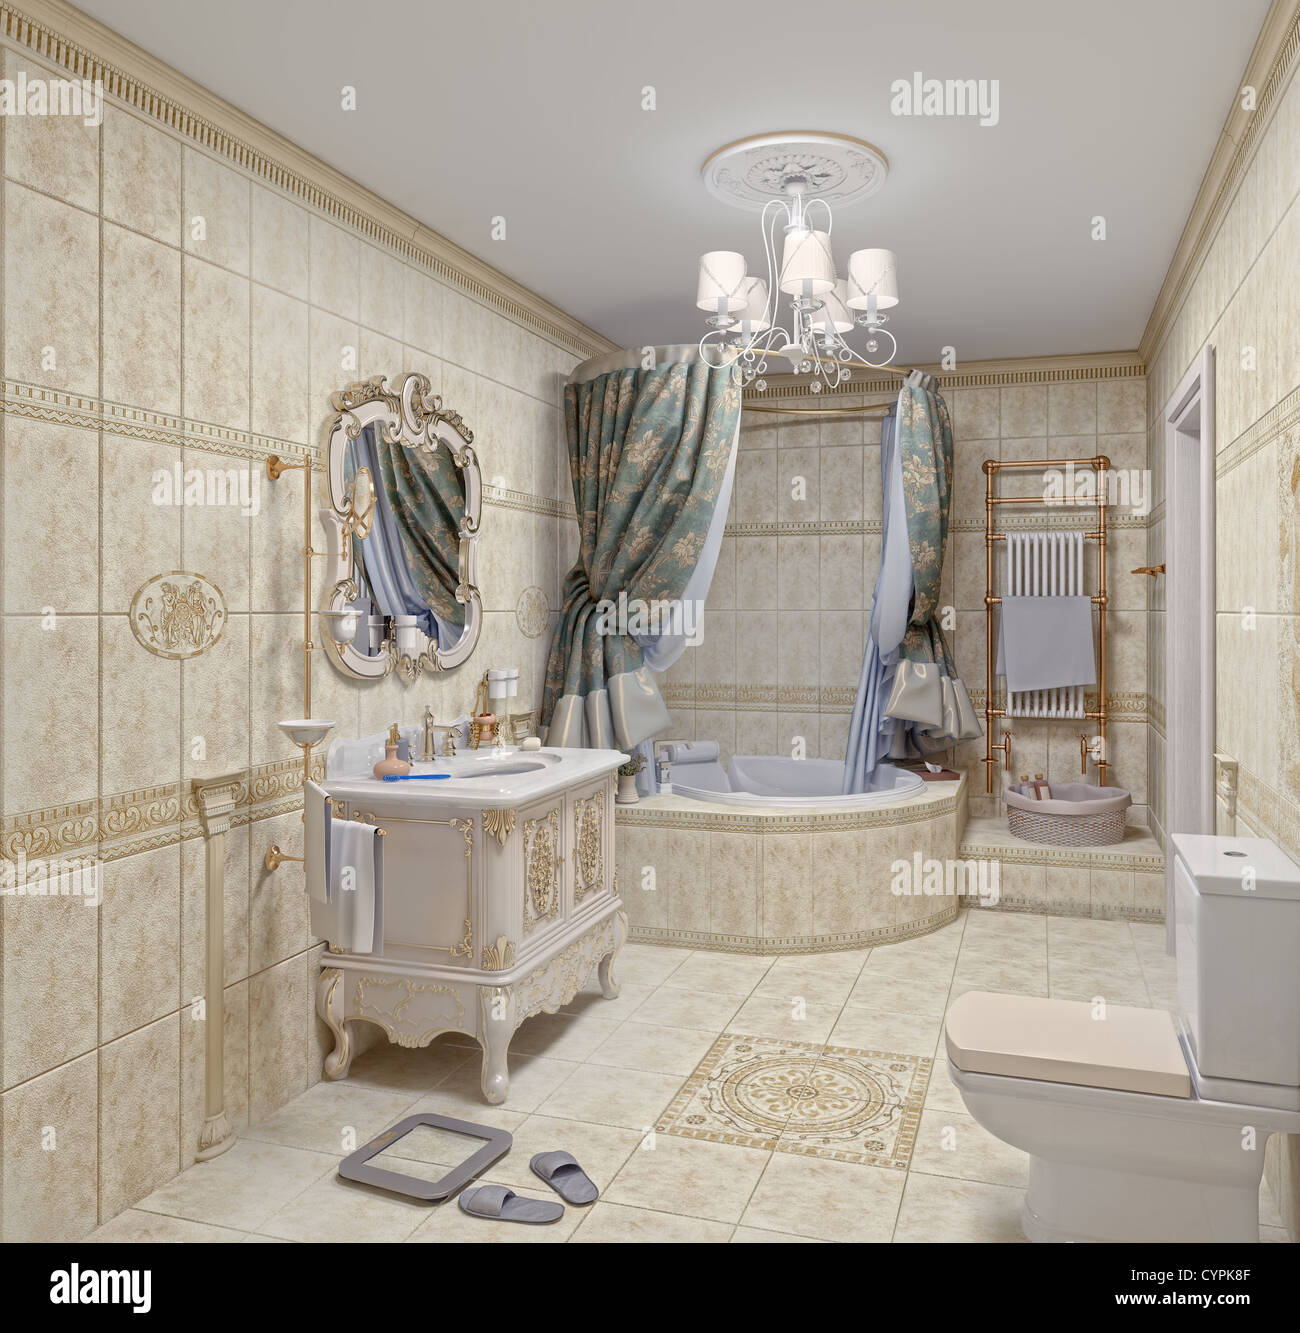 . Modern Bathroom interior with tiles and mirror  3D rendering Stock